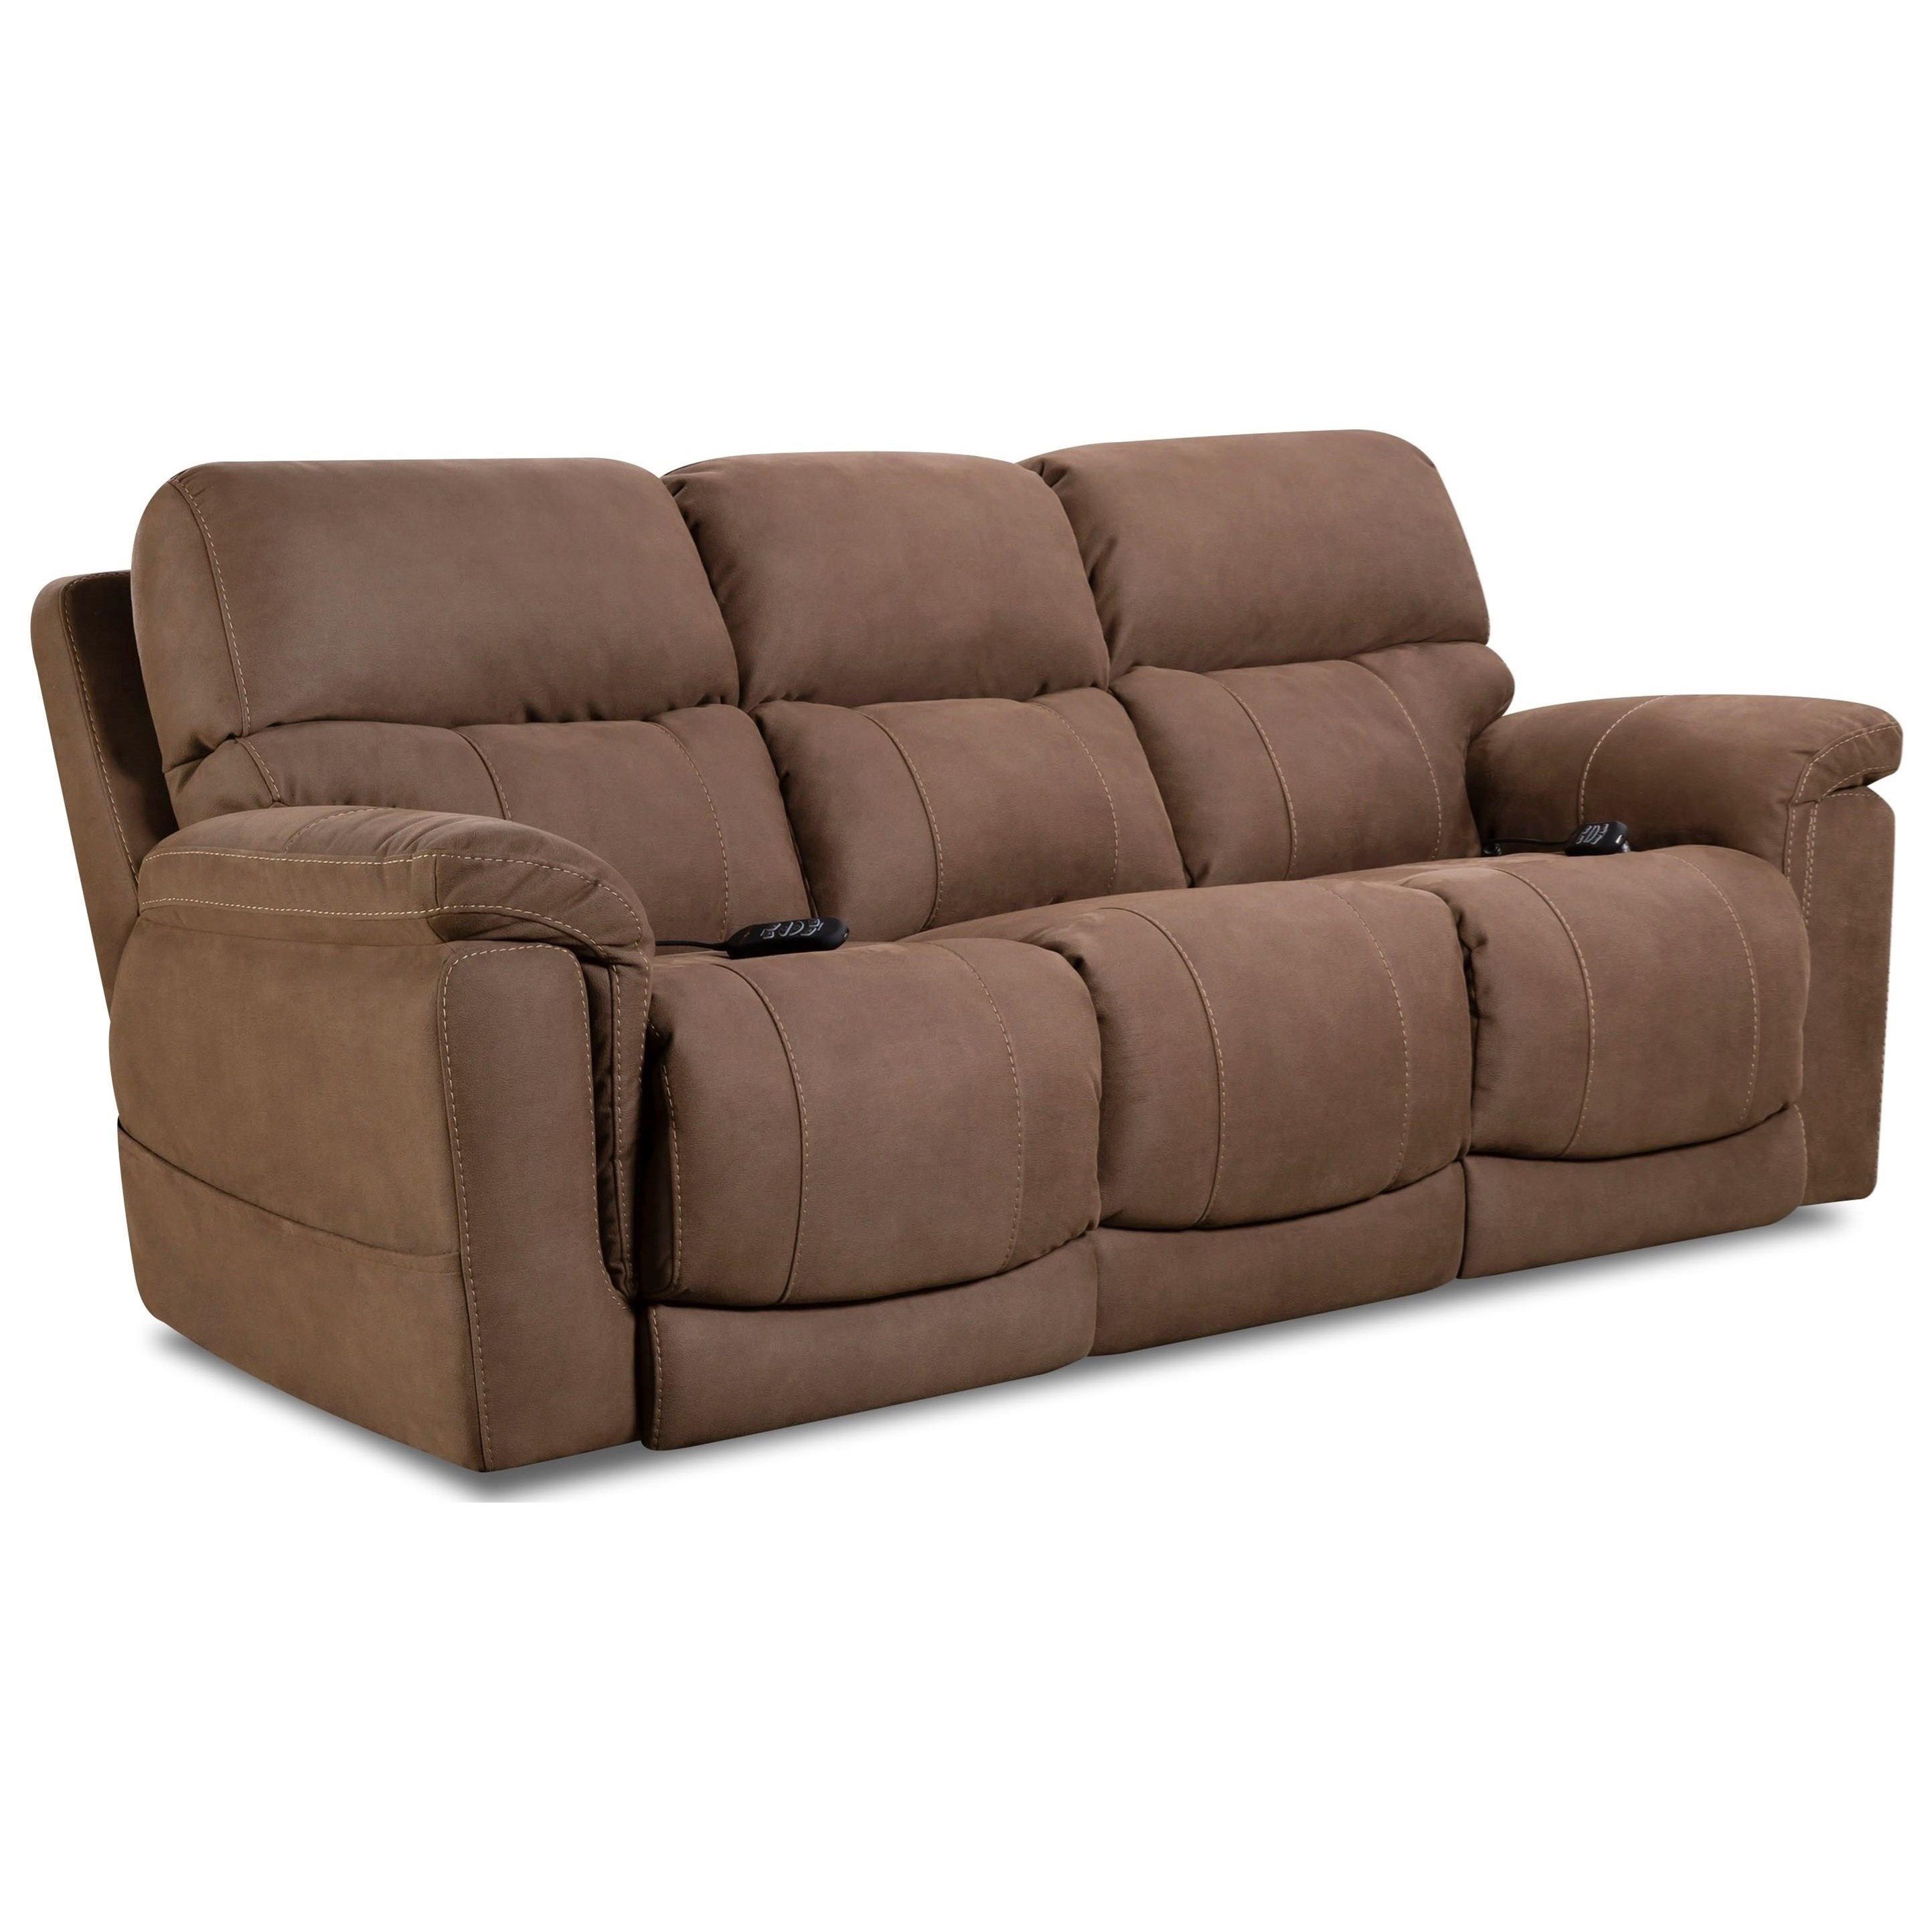 Double Recliner Chair 175 Collection Double Reclining Power Sofa By Homestretch At Dunk Bright Furniture